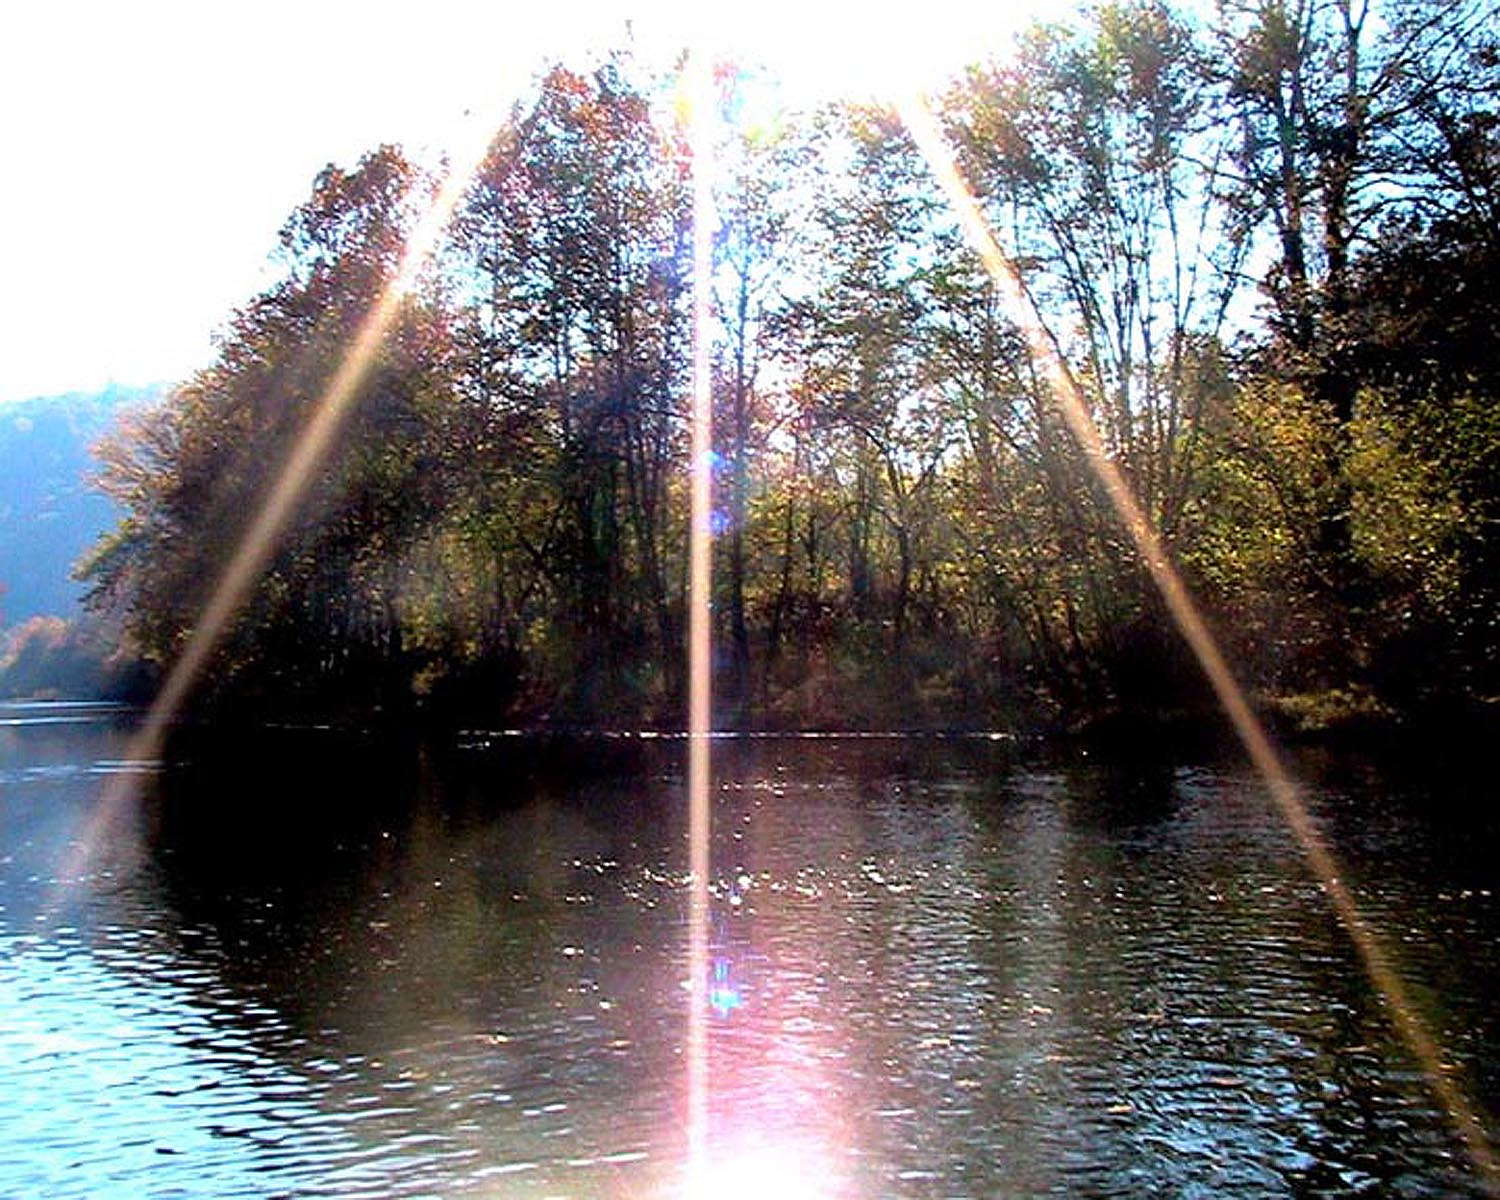 Bicycle_03 - Sunburst Over River